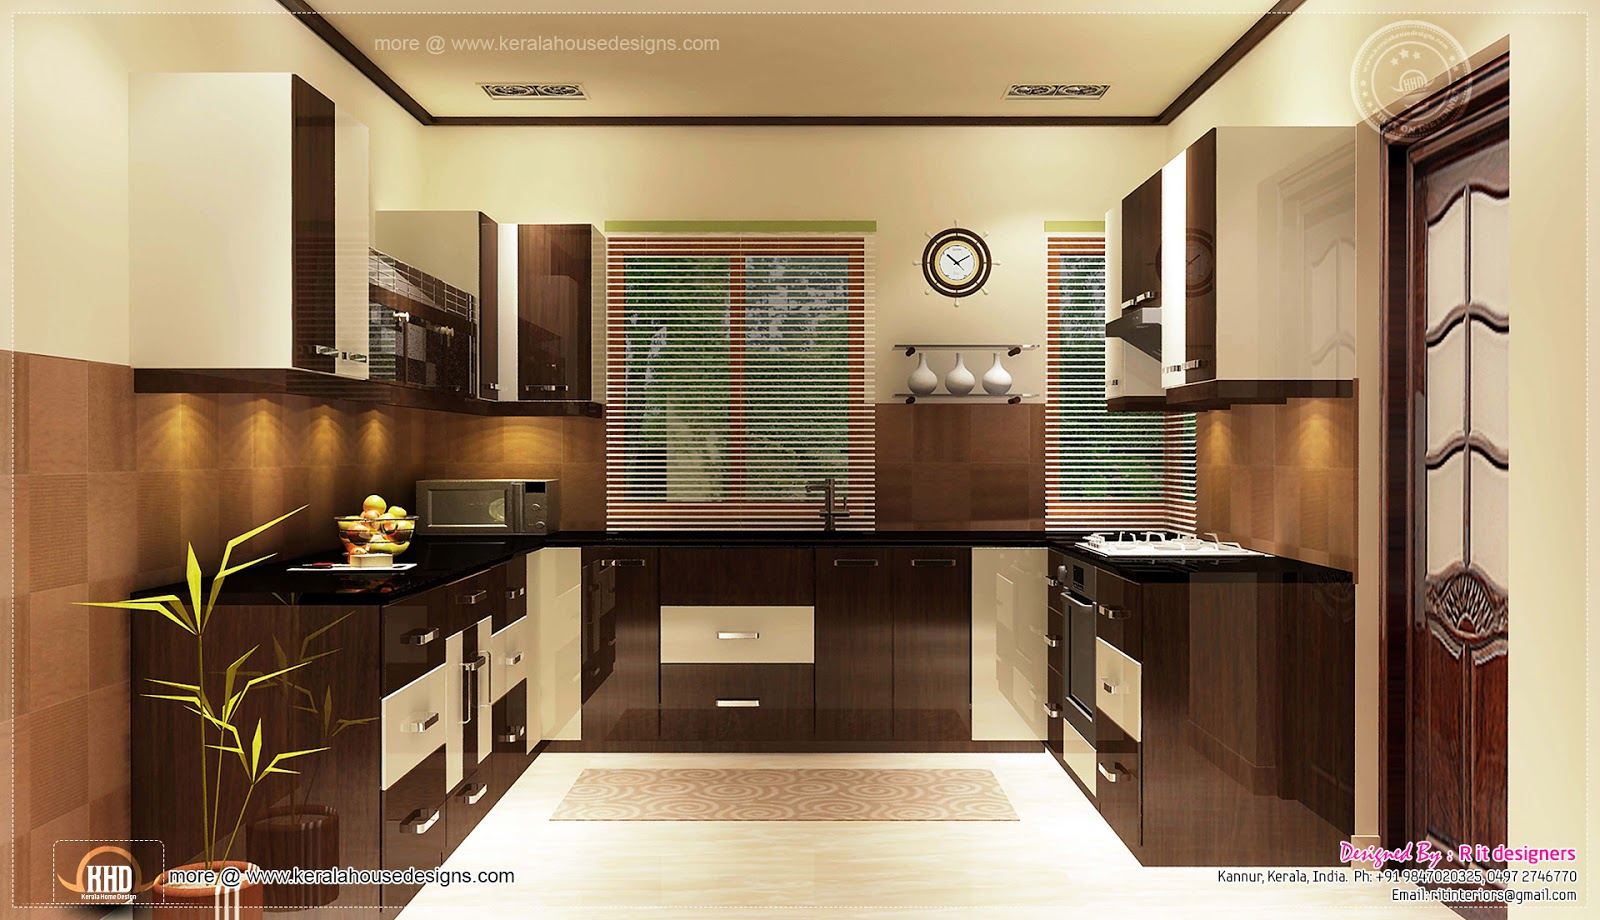 Home interior designs by rit designers kerala home for At home interior design